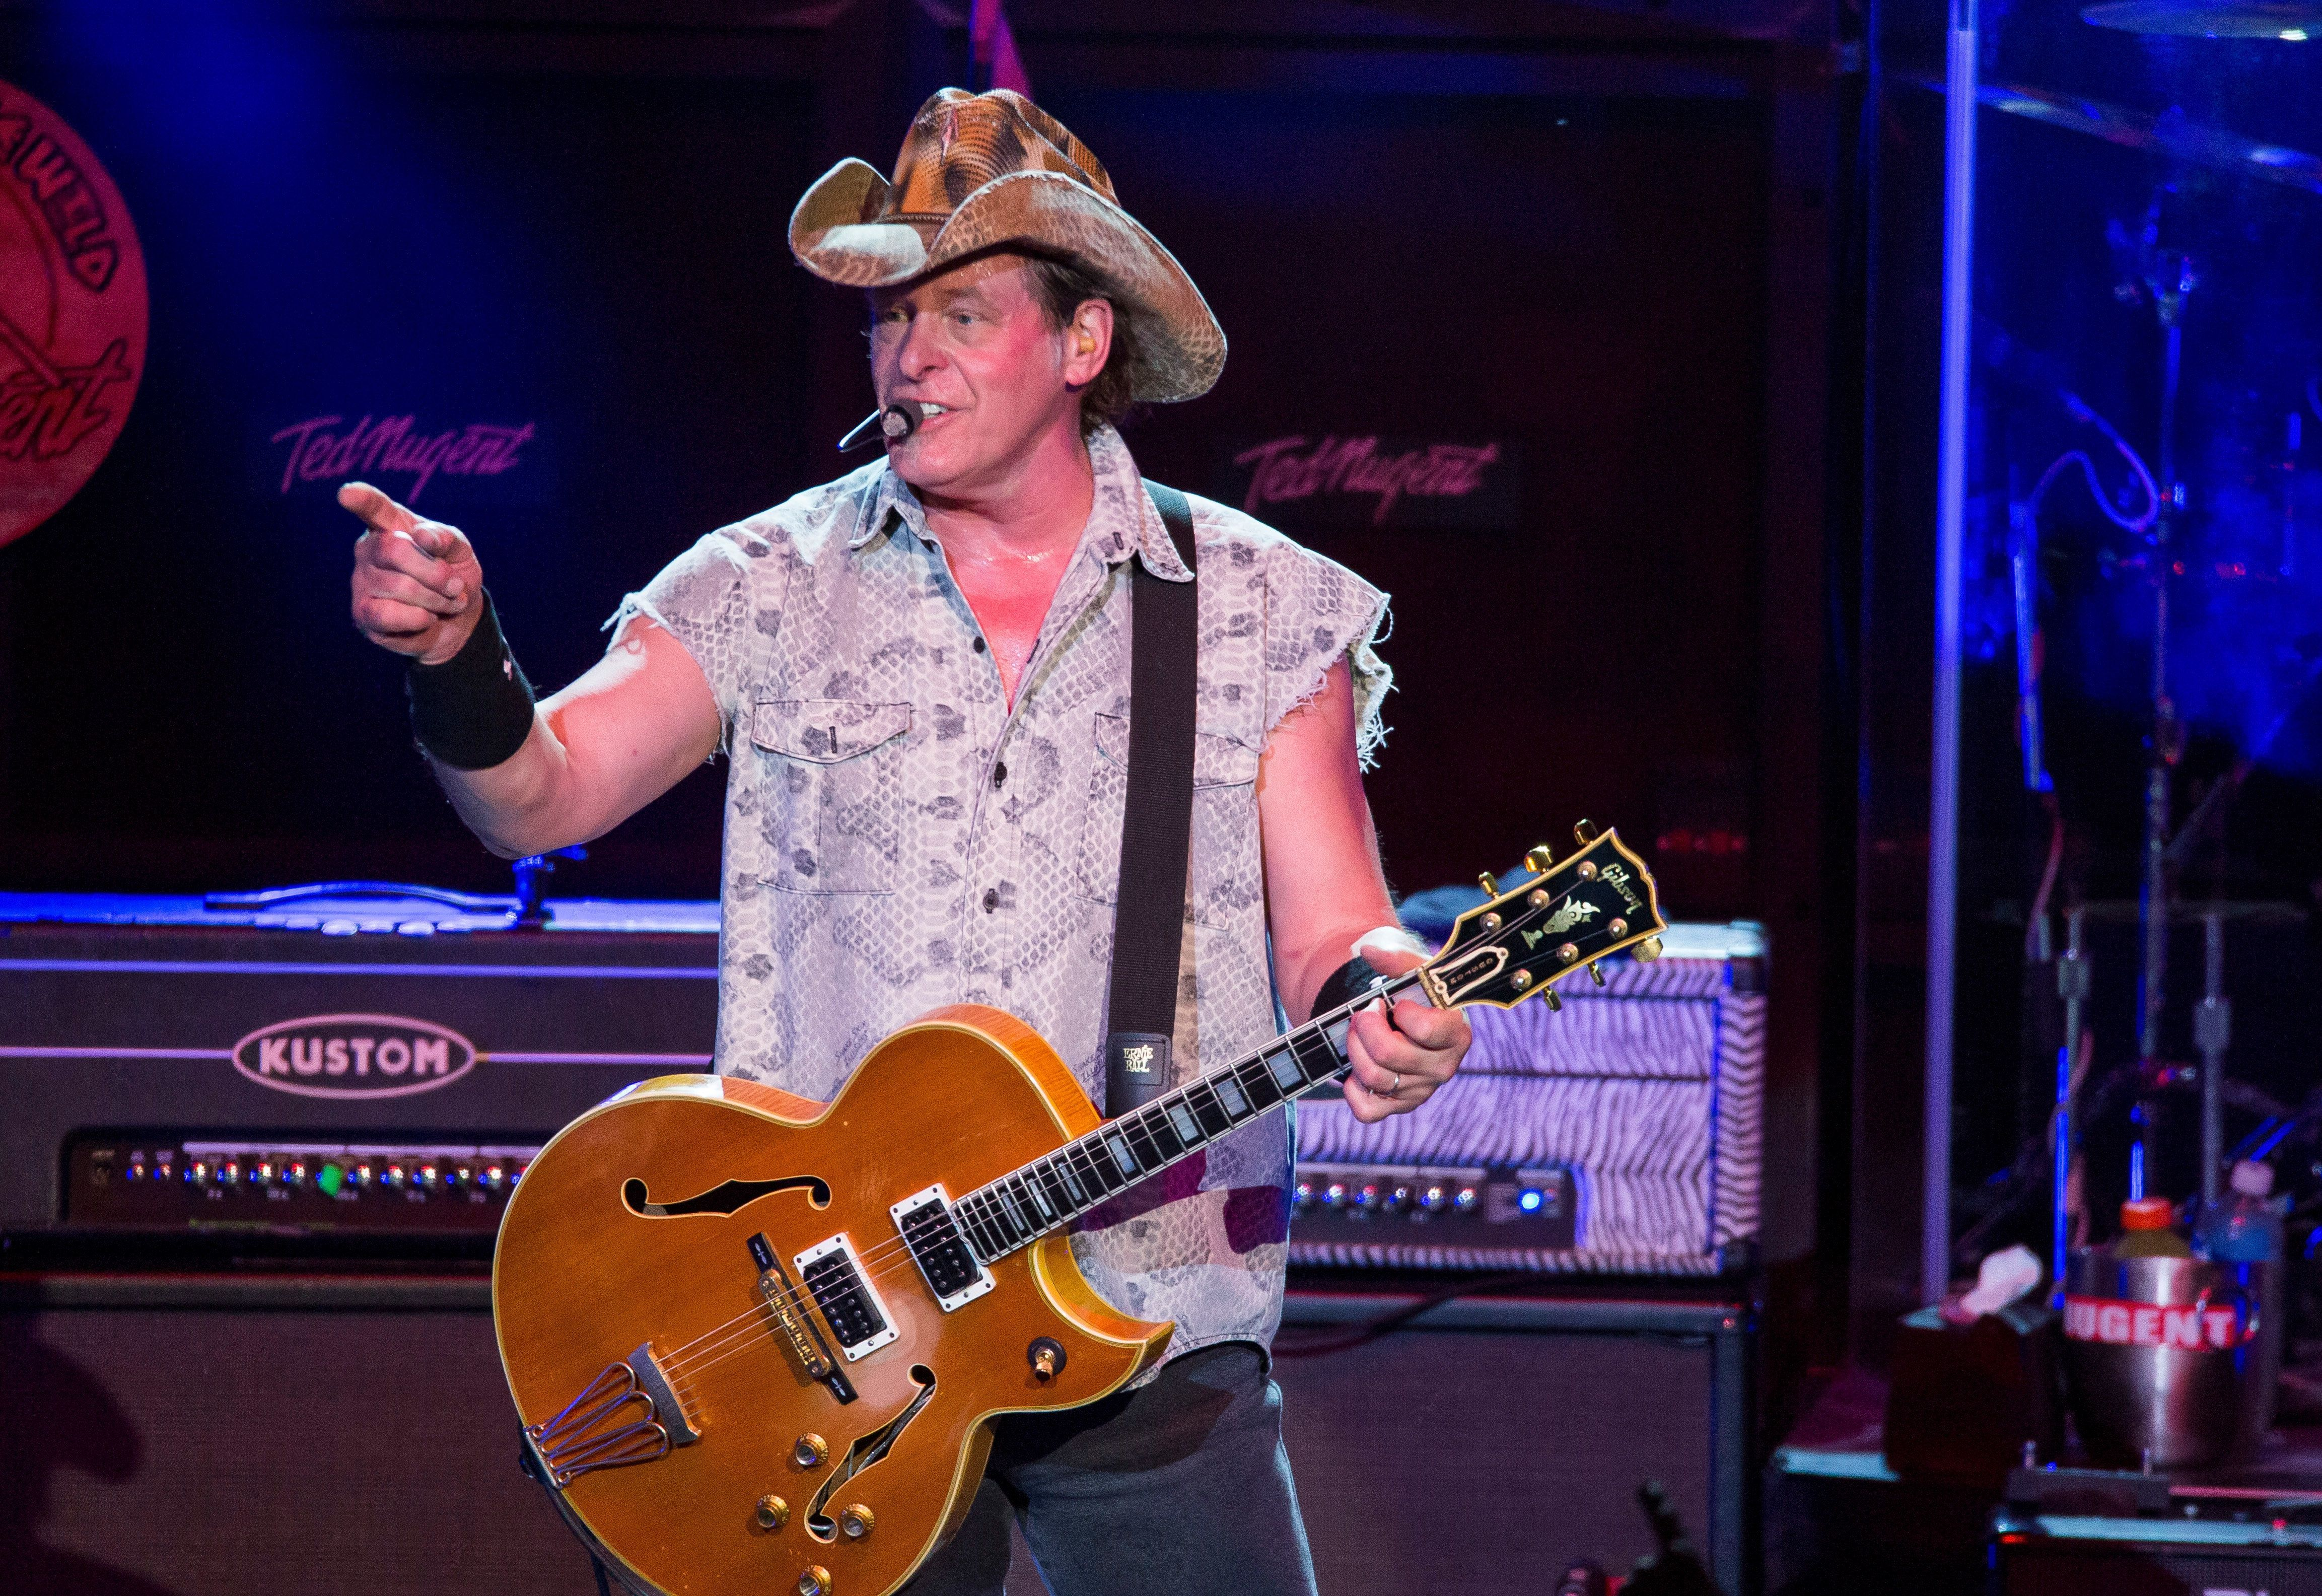 STERLING HEIGHTS, MI - AUGUST 26:  Ted Nugent performs in support of his Sonic Baptizm Tour 2016 at Freedom Hill Amphitheatre on August 26, 2016 in Sterling Heights, Michigan.  (Photo by Scott Legato/Getty Images)